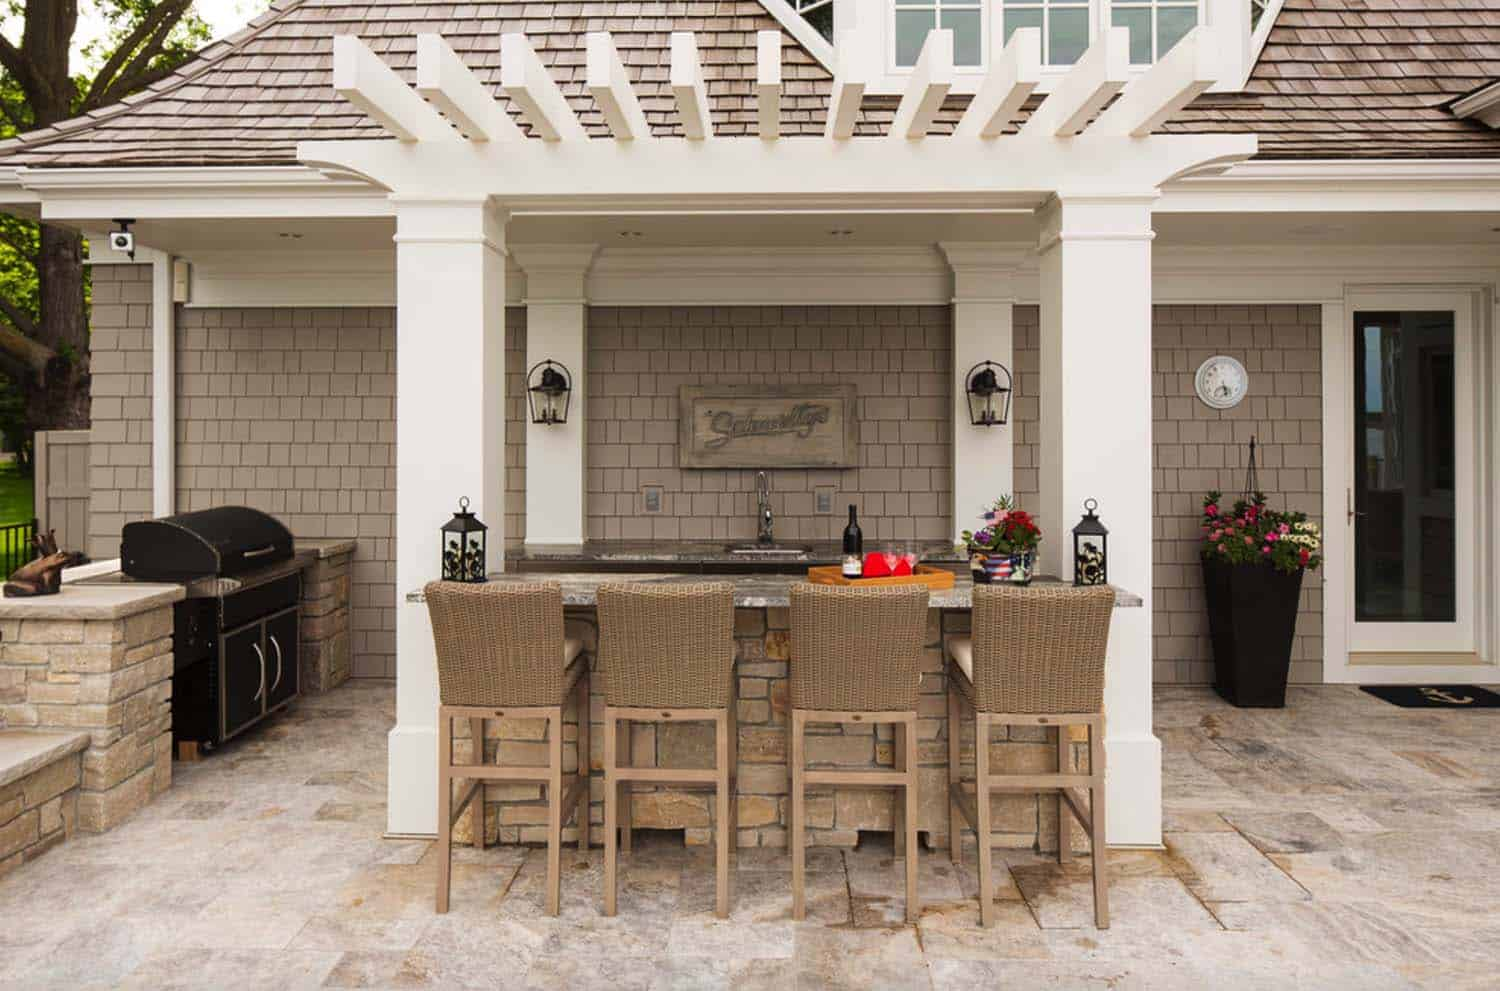 Outdoor Kitchens-Bars Entertaining-05-1 Kindesign.jpg